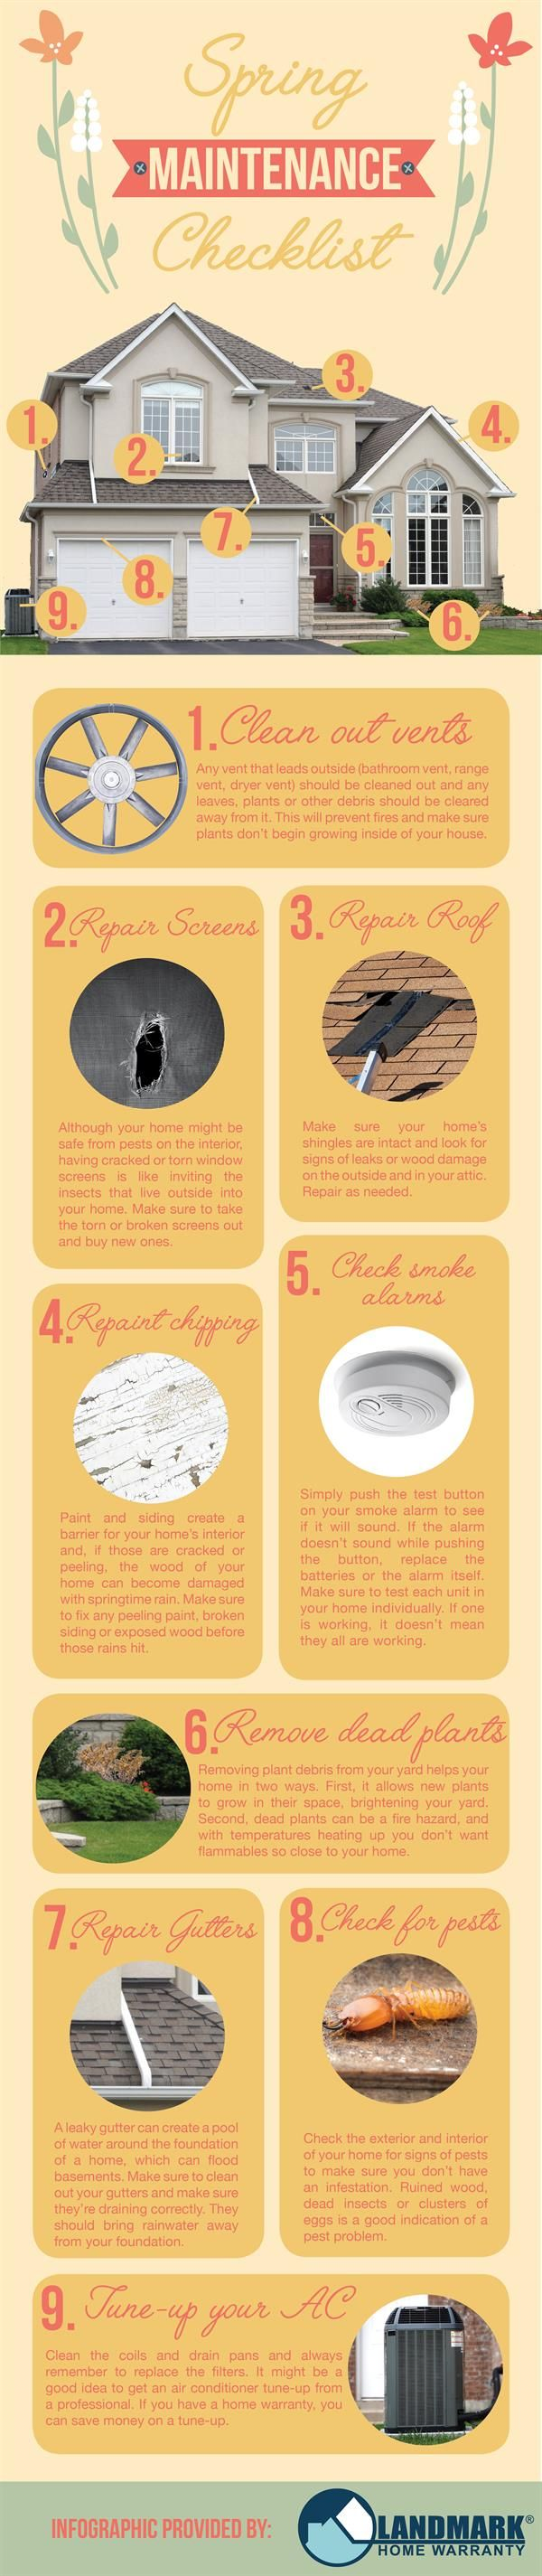 Do some spring cleaning with this Spring Maintenance Checklist!